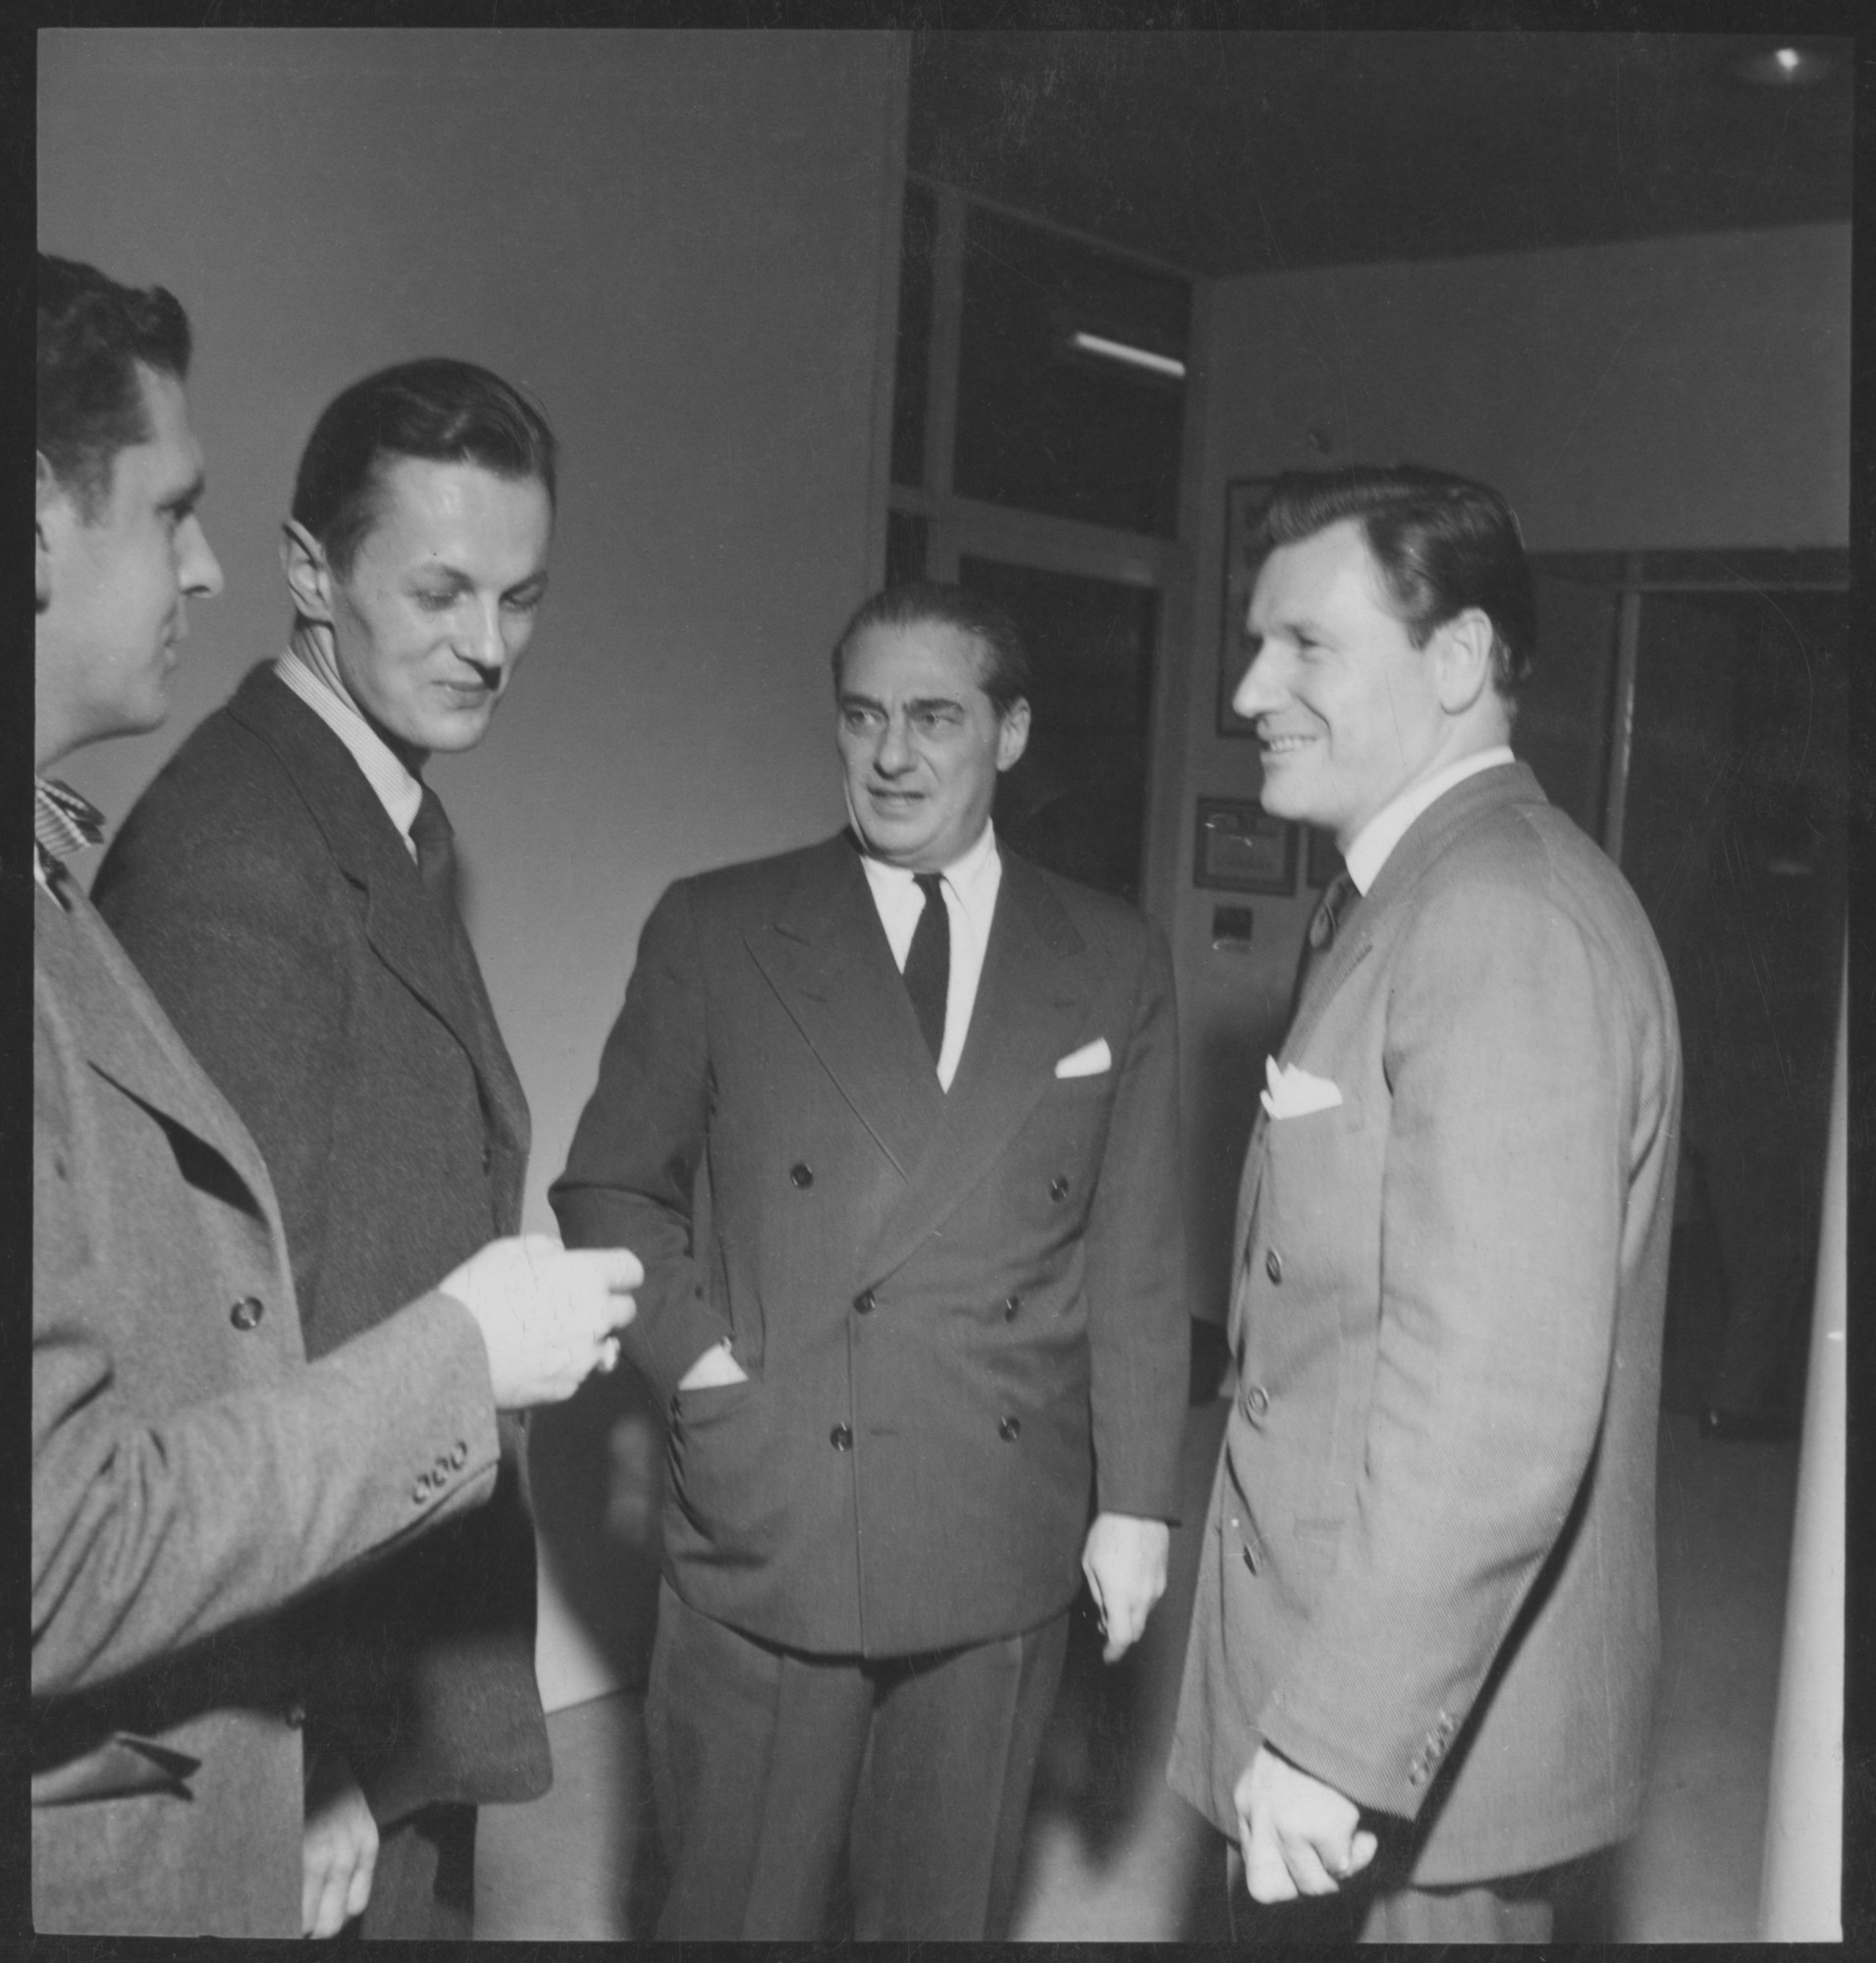 Left to right: Don R  Knorr, Clive Latimer, Harry Fish and